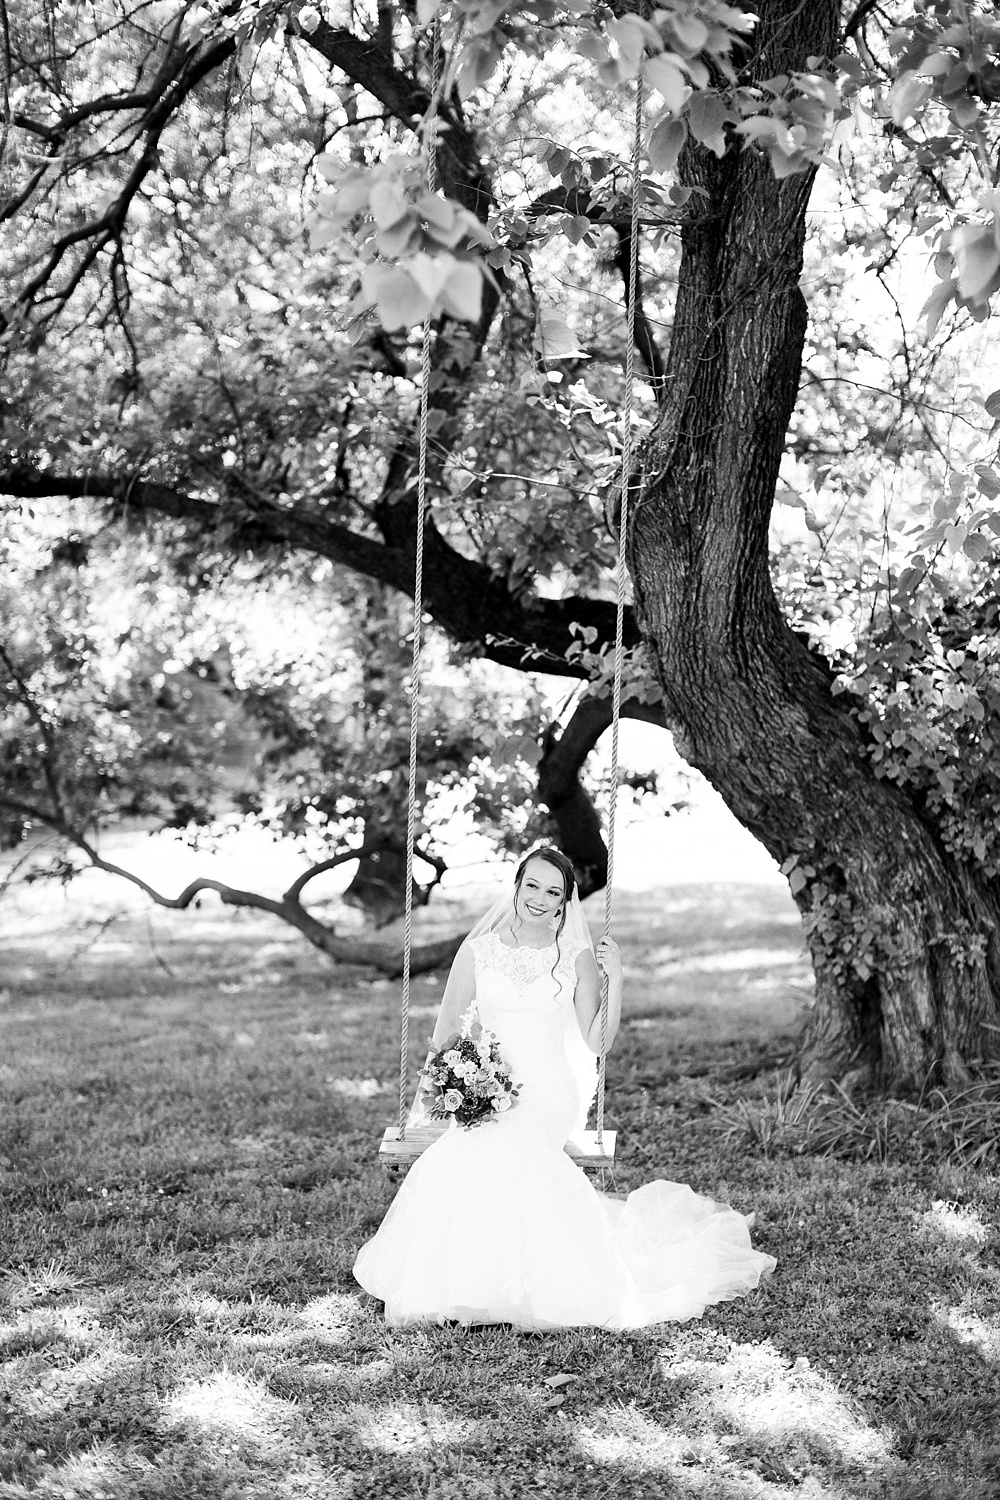 bridal portrait of a bride sitting on an old swing hung from an oak tree